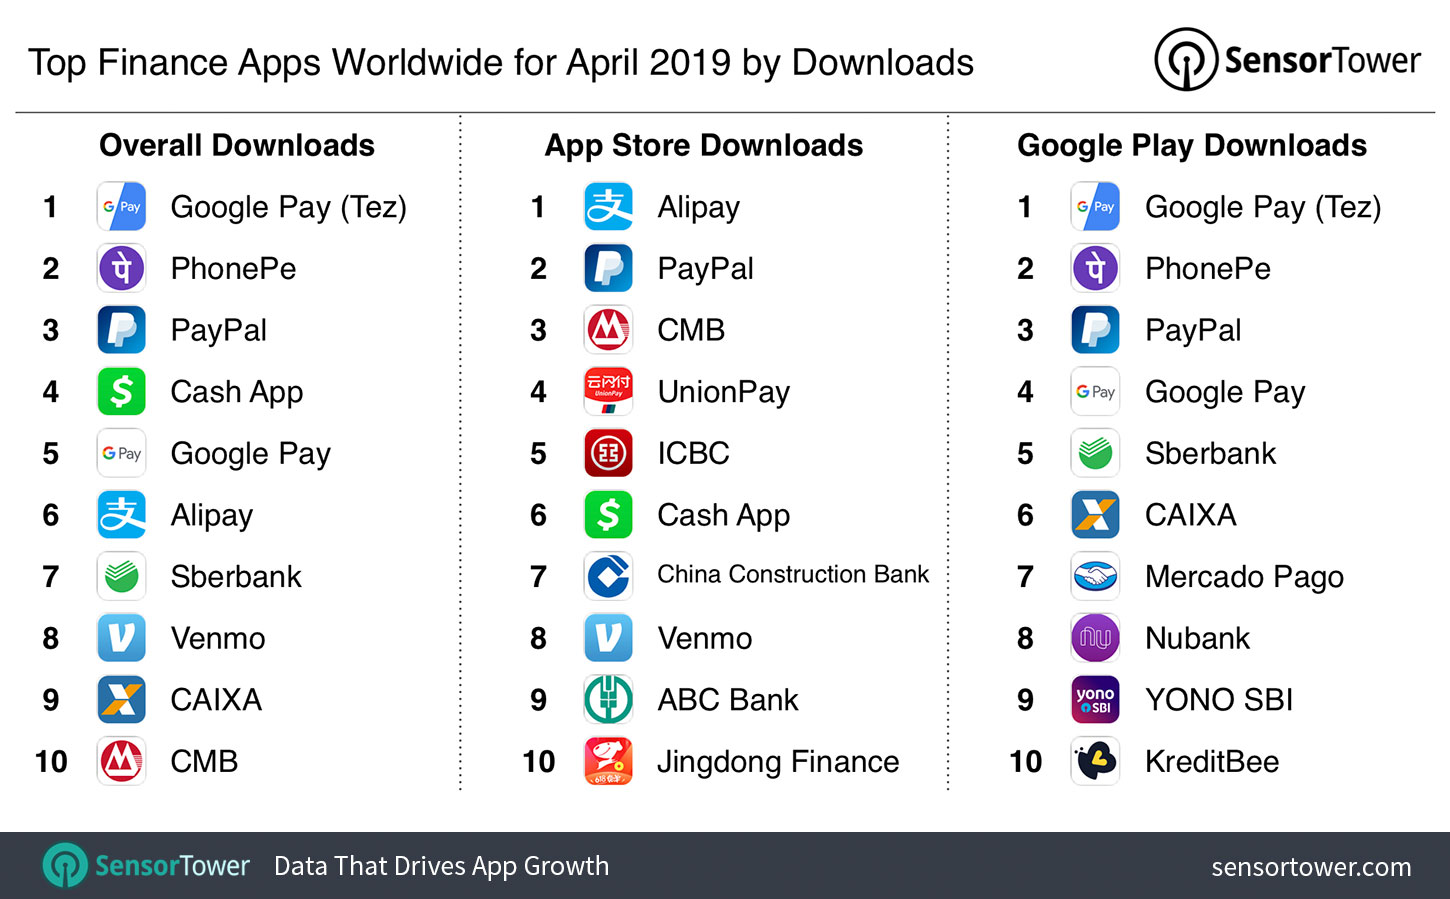 Top Finance Apps Worldwide for April 2019 by Downloads - Internet